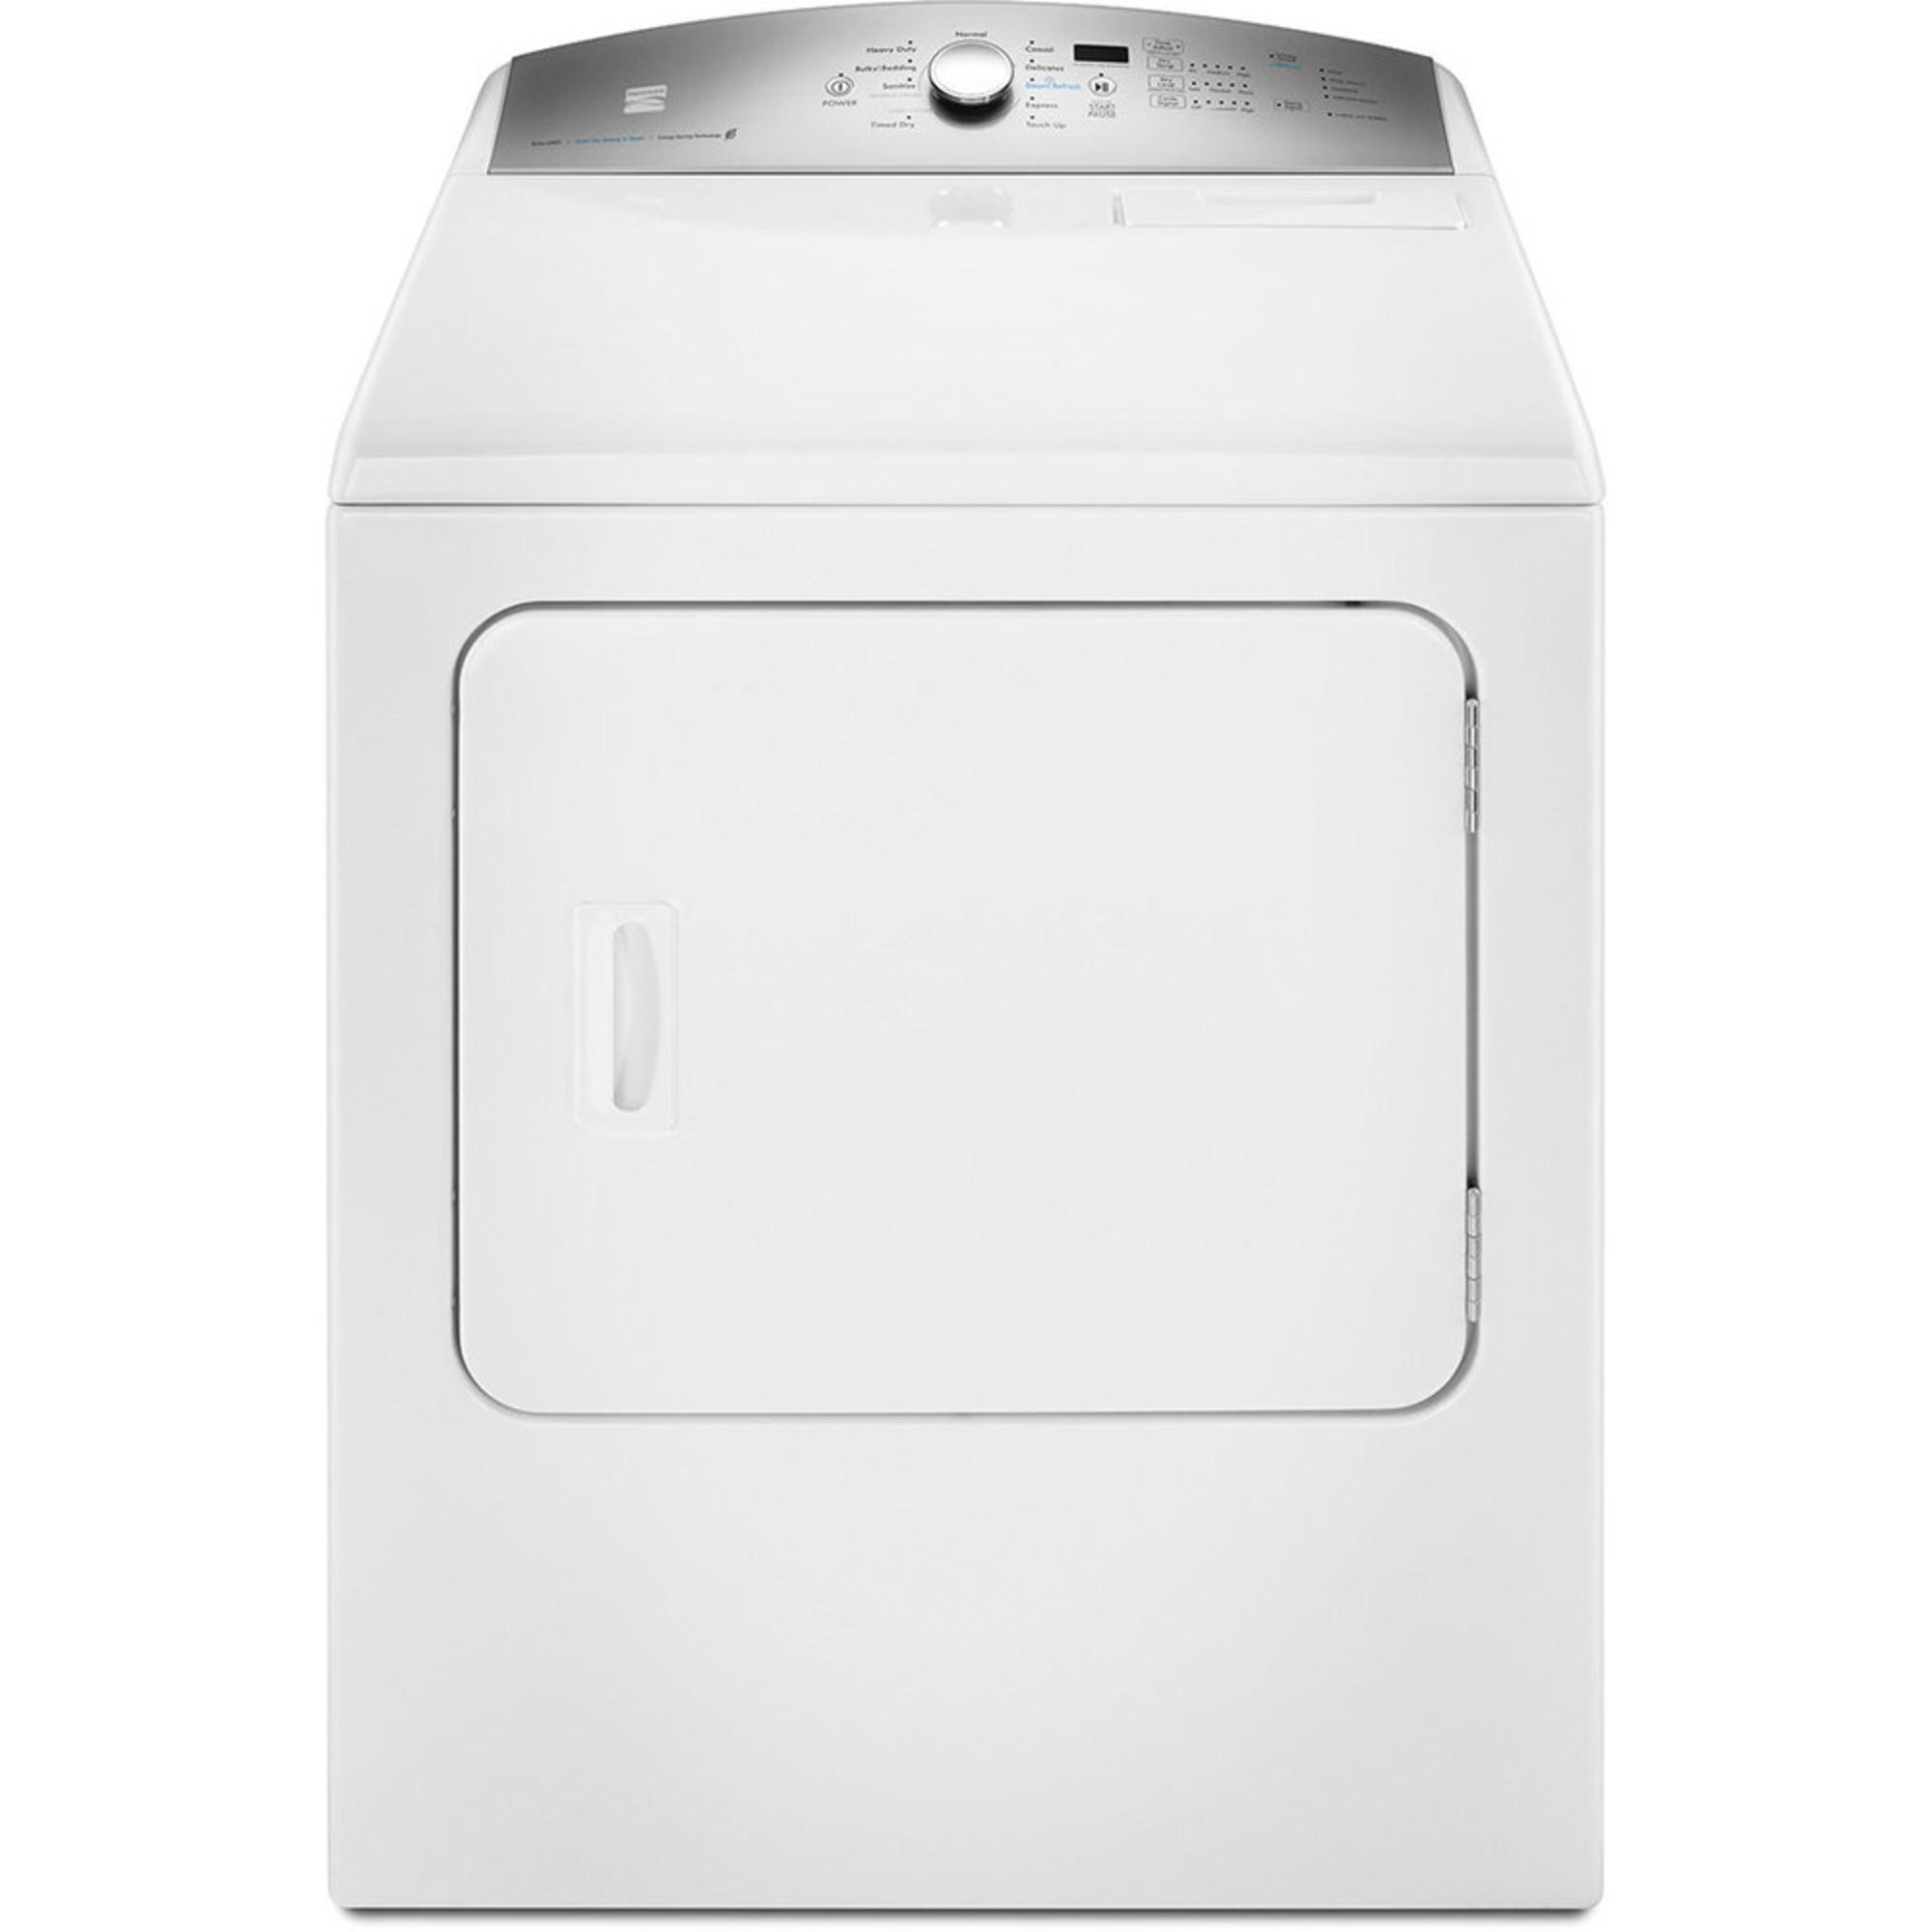 Kenmore 7.0-cu.ft. Electric Dryer, White (26-67132